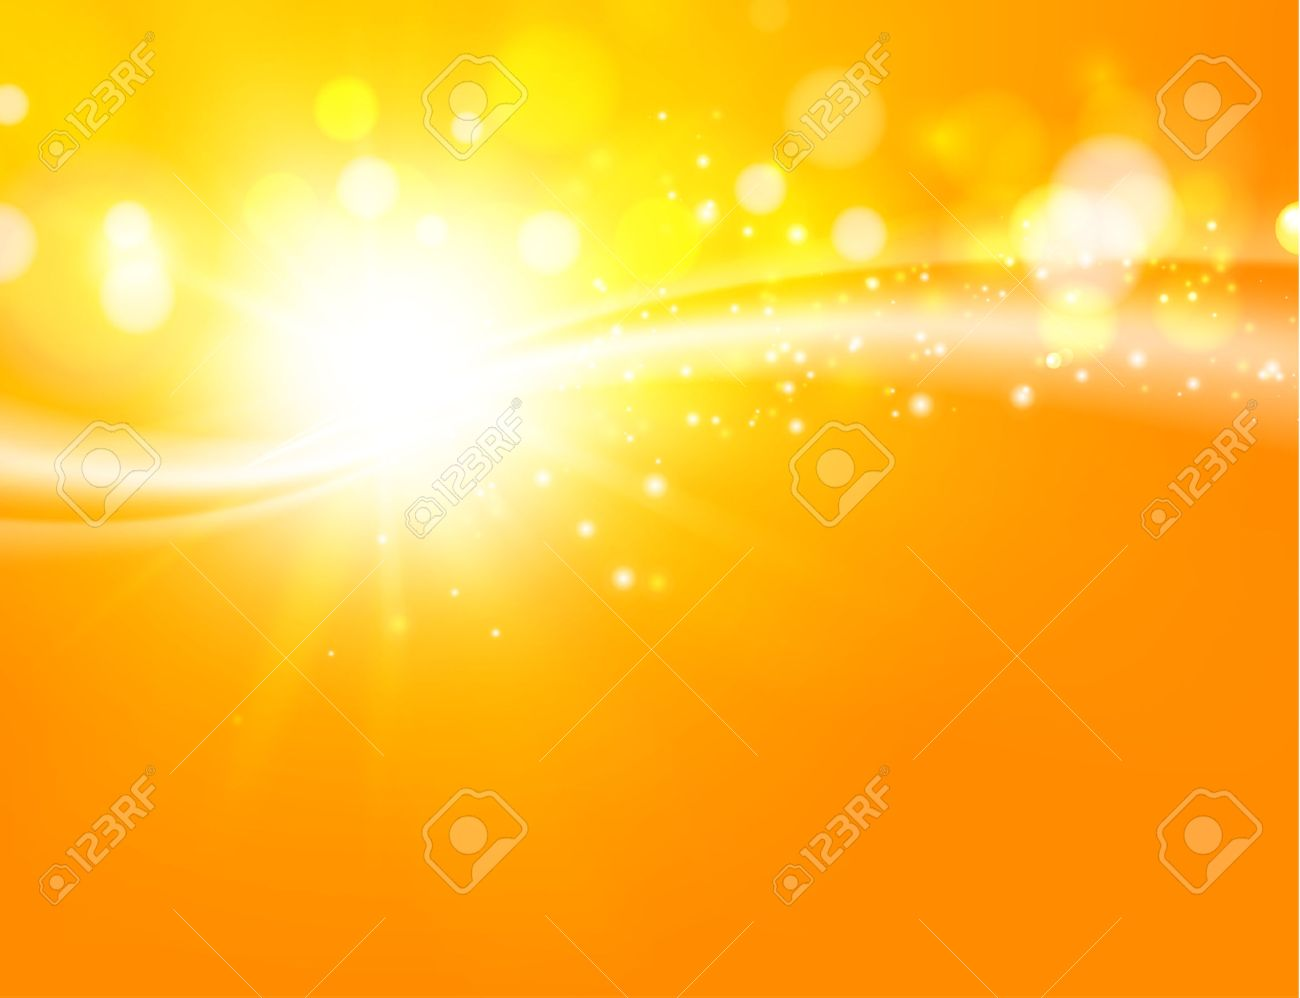 Yellow Orange Background Gold Swirl Background Orange Abstract 1300x998